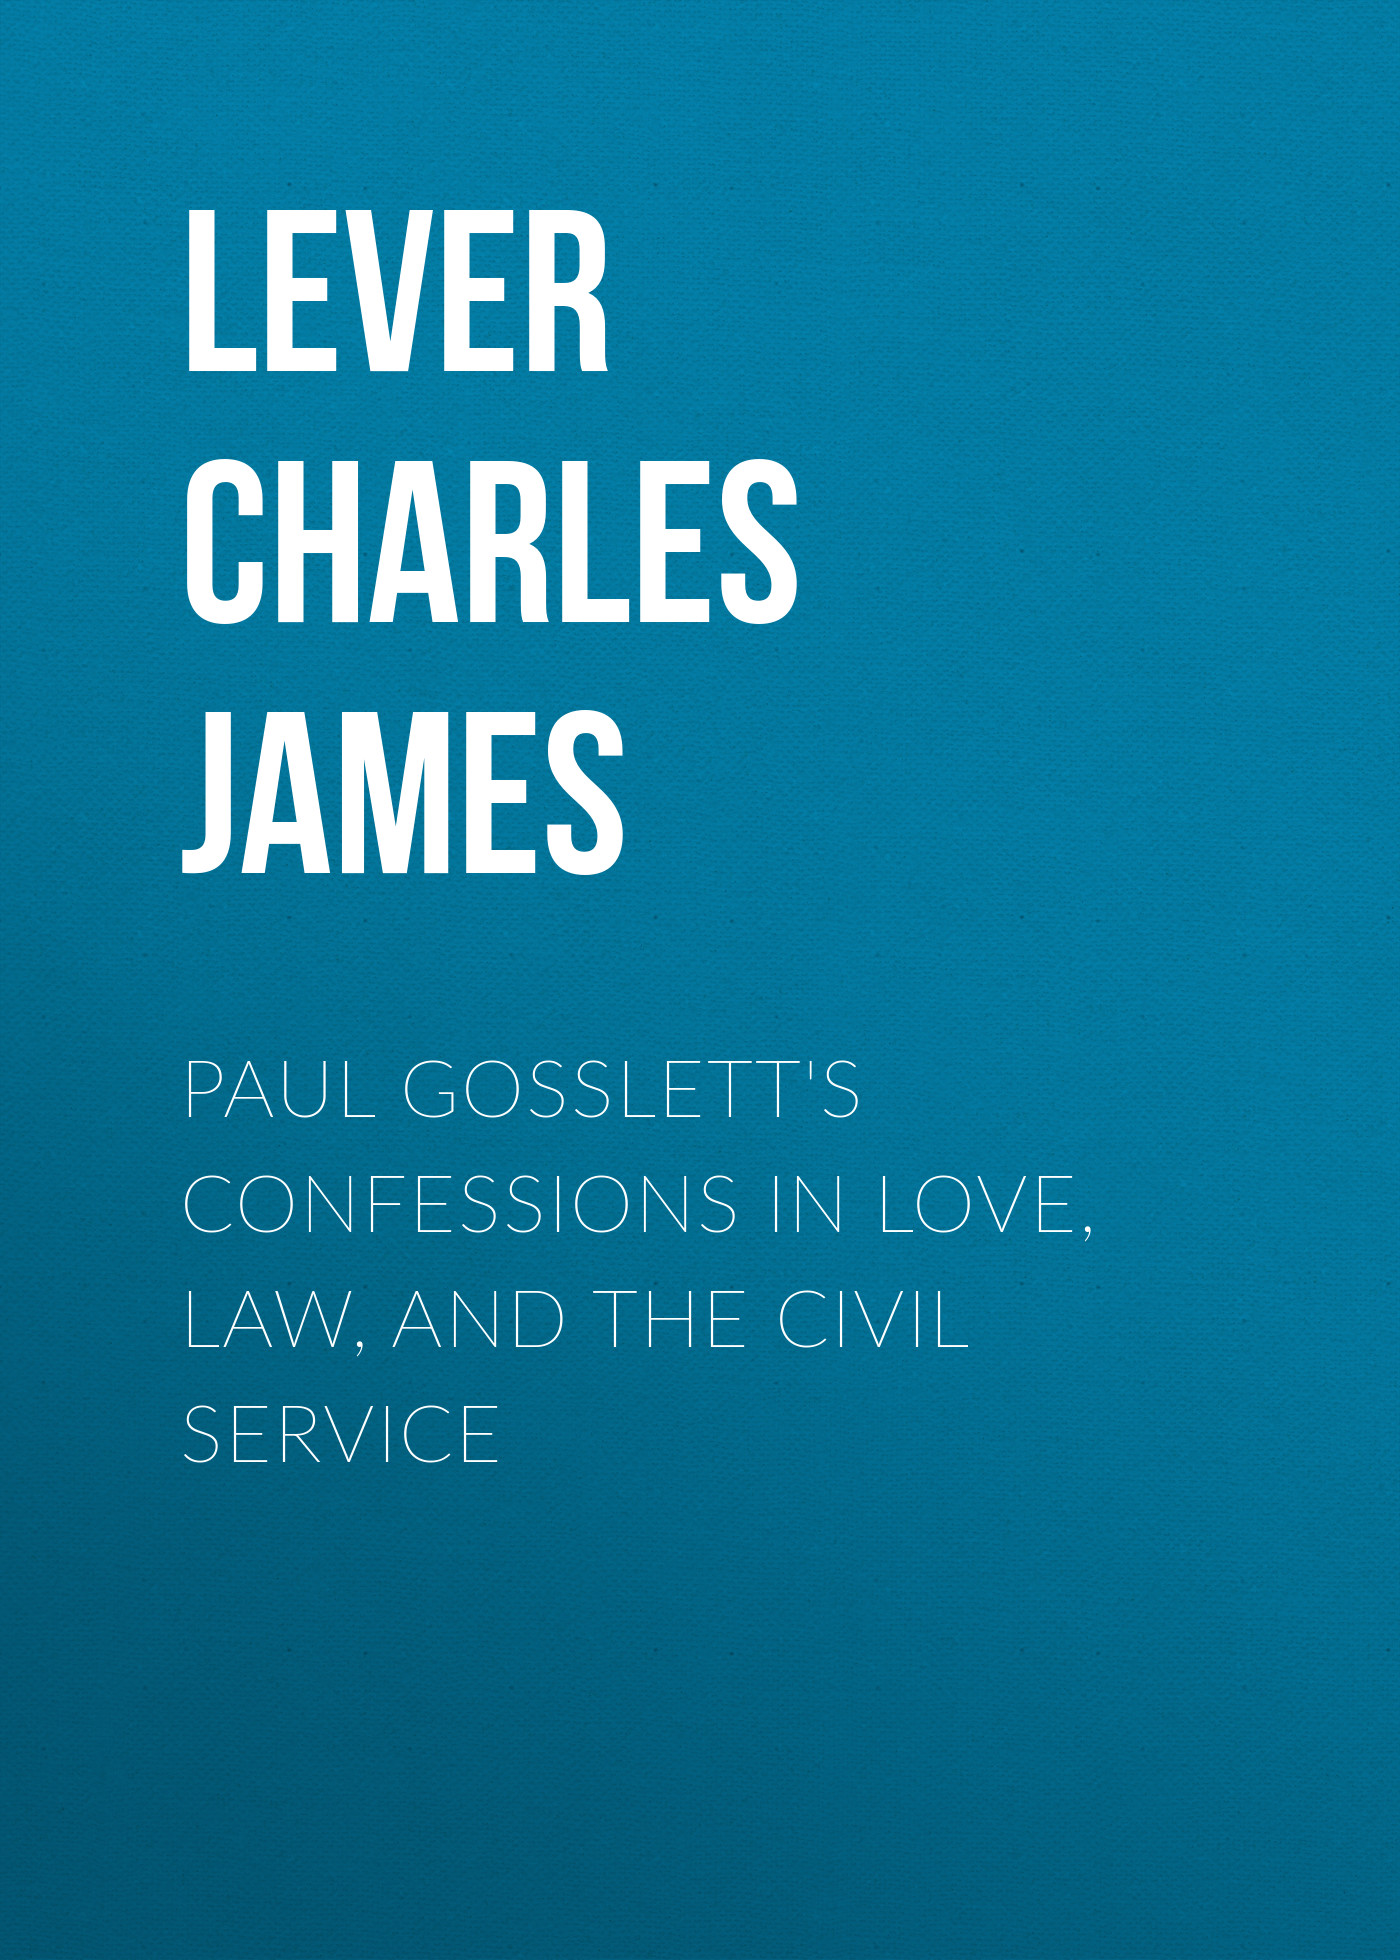 Lever Charles James Paul Gosslett's Confessions in Love, Law, and The Civil Service lever charles james nuts and nutcrackers